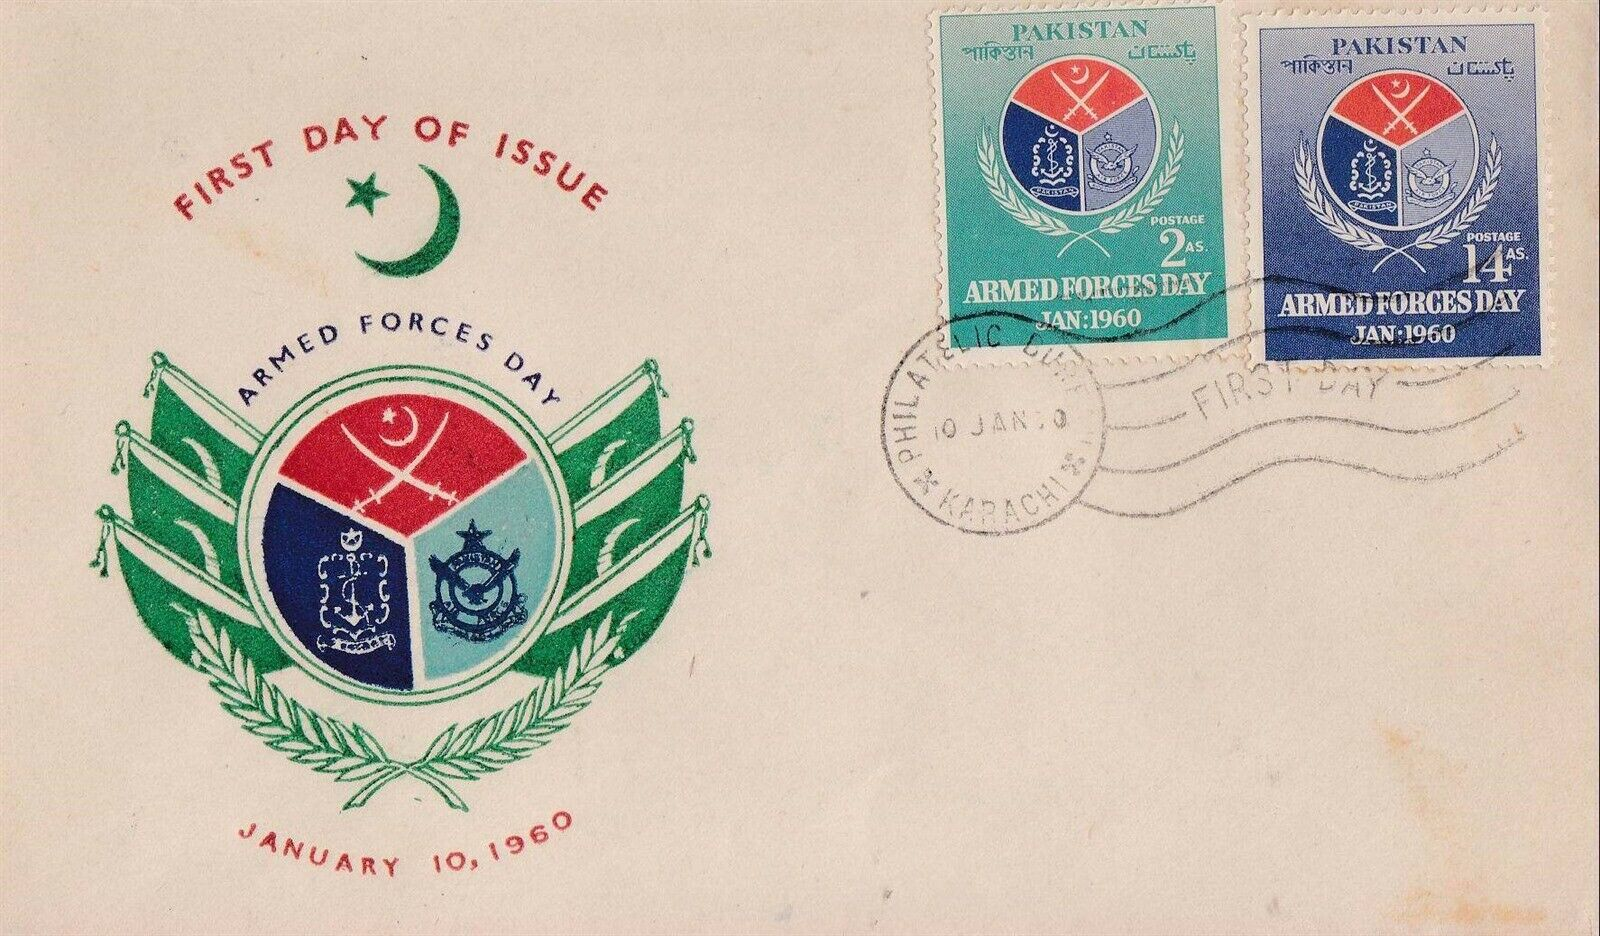 Pakistan Fdc 1960 Armed Forces Day